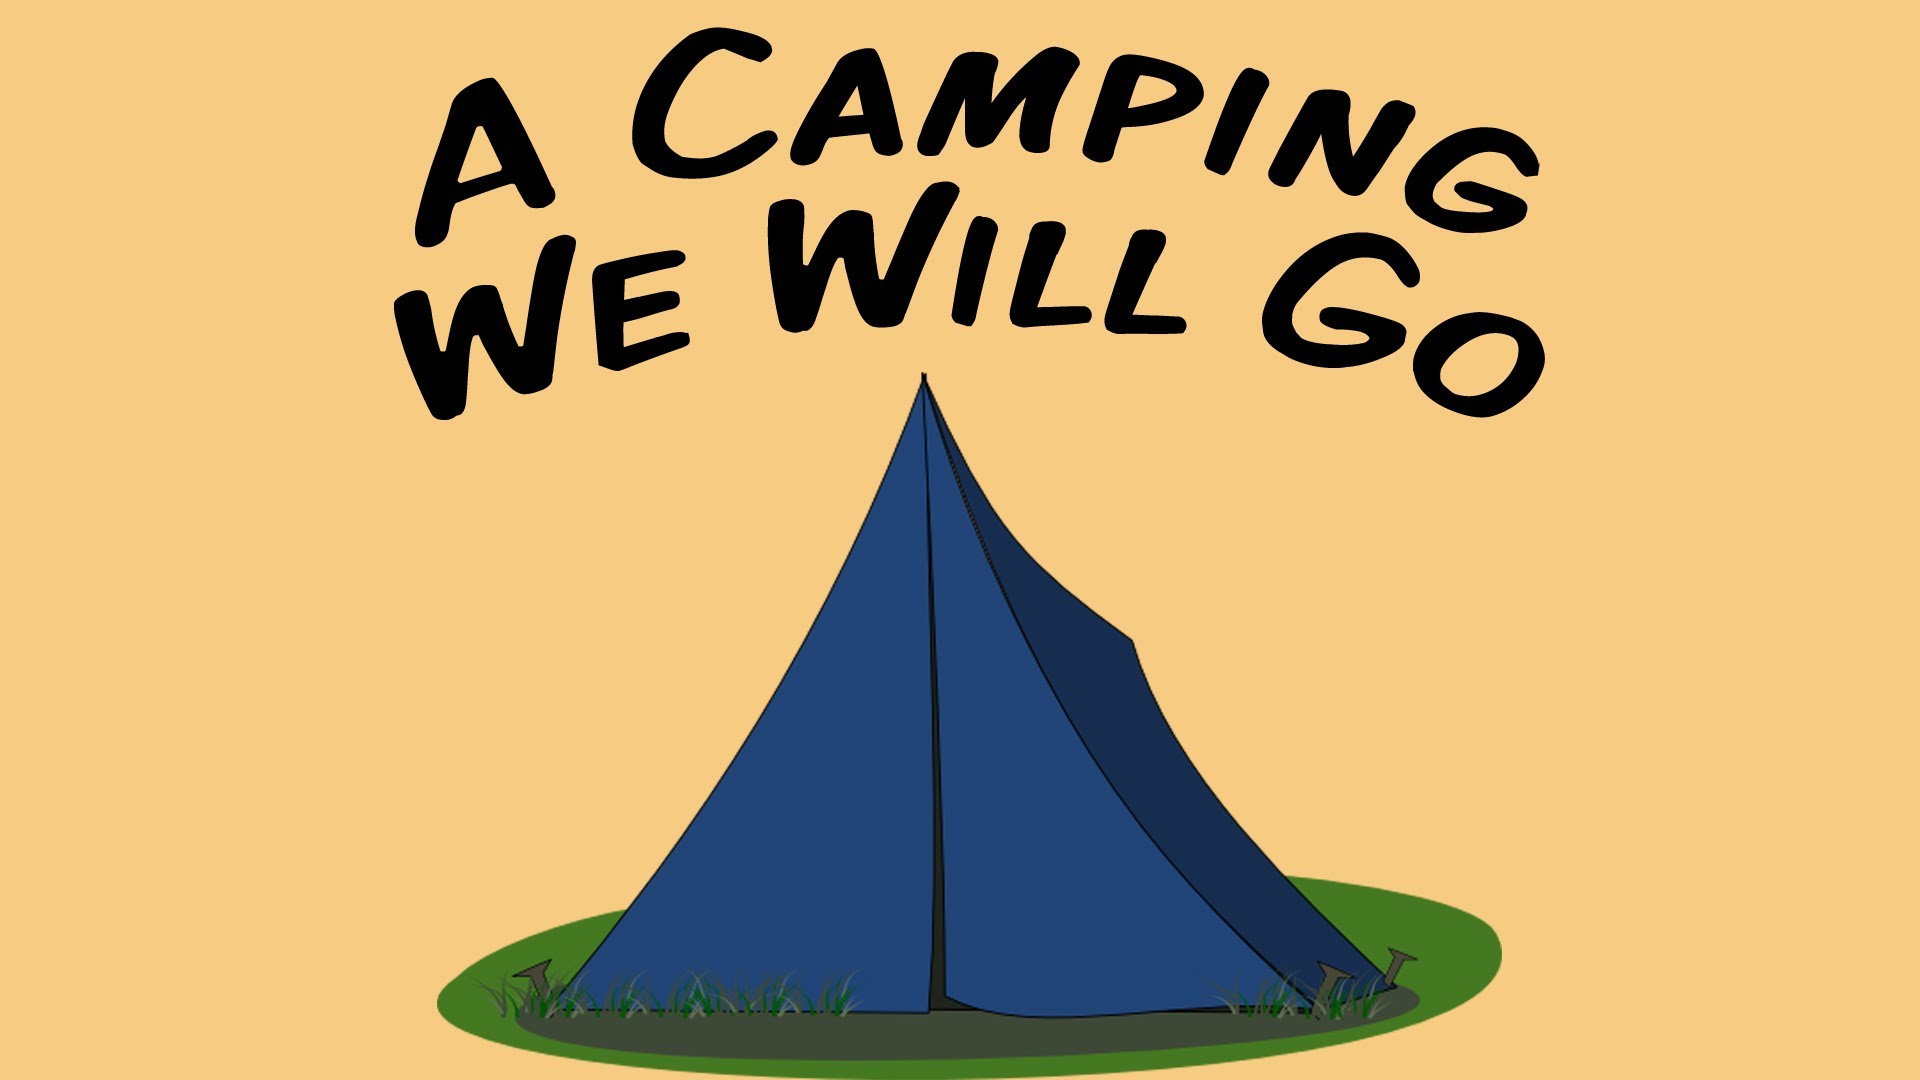 A camping we will. Campfire clipart children's